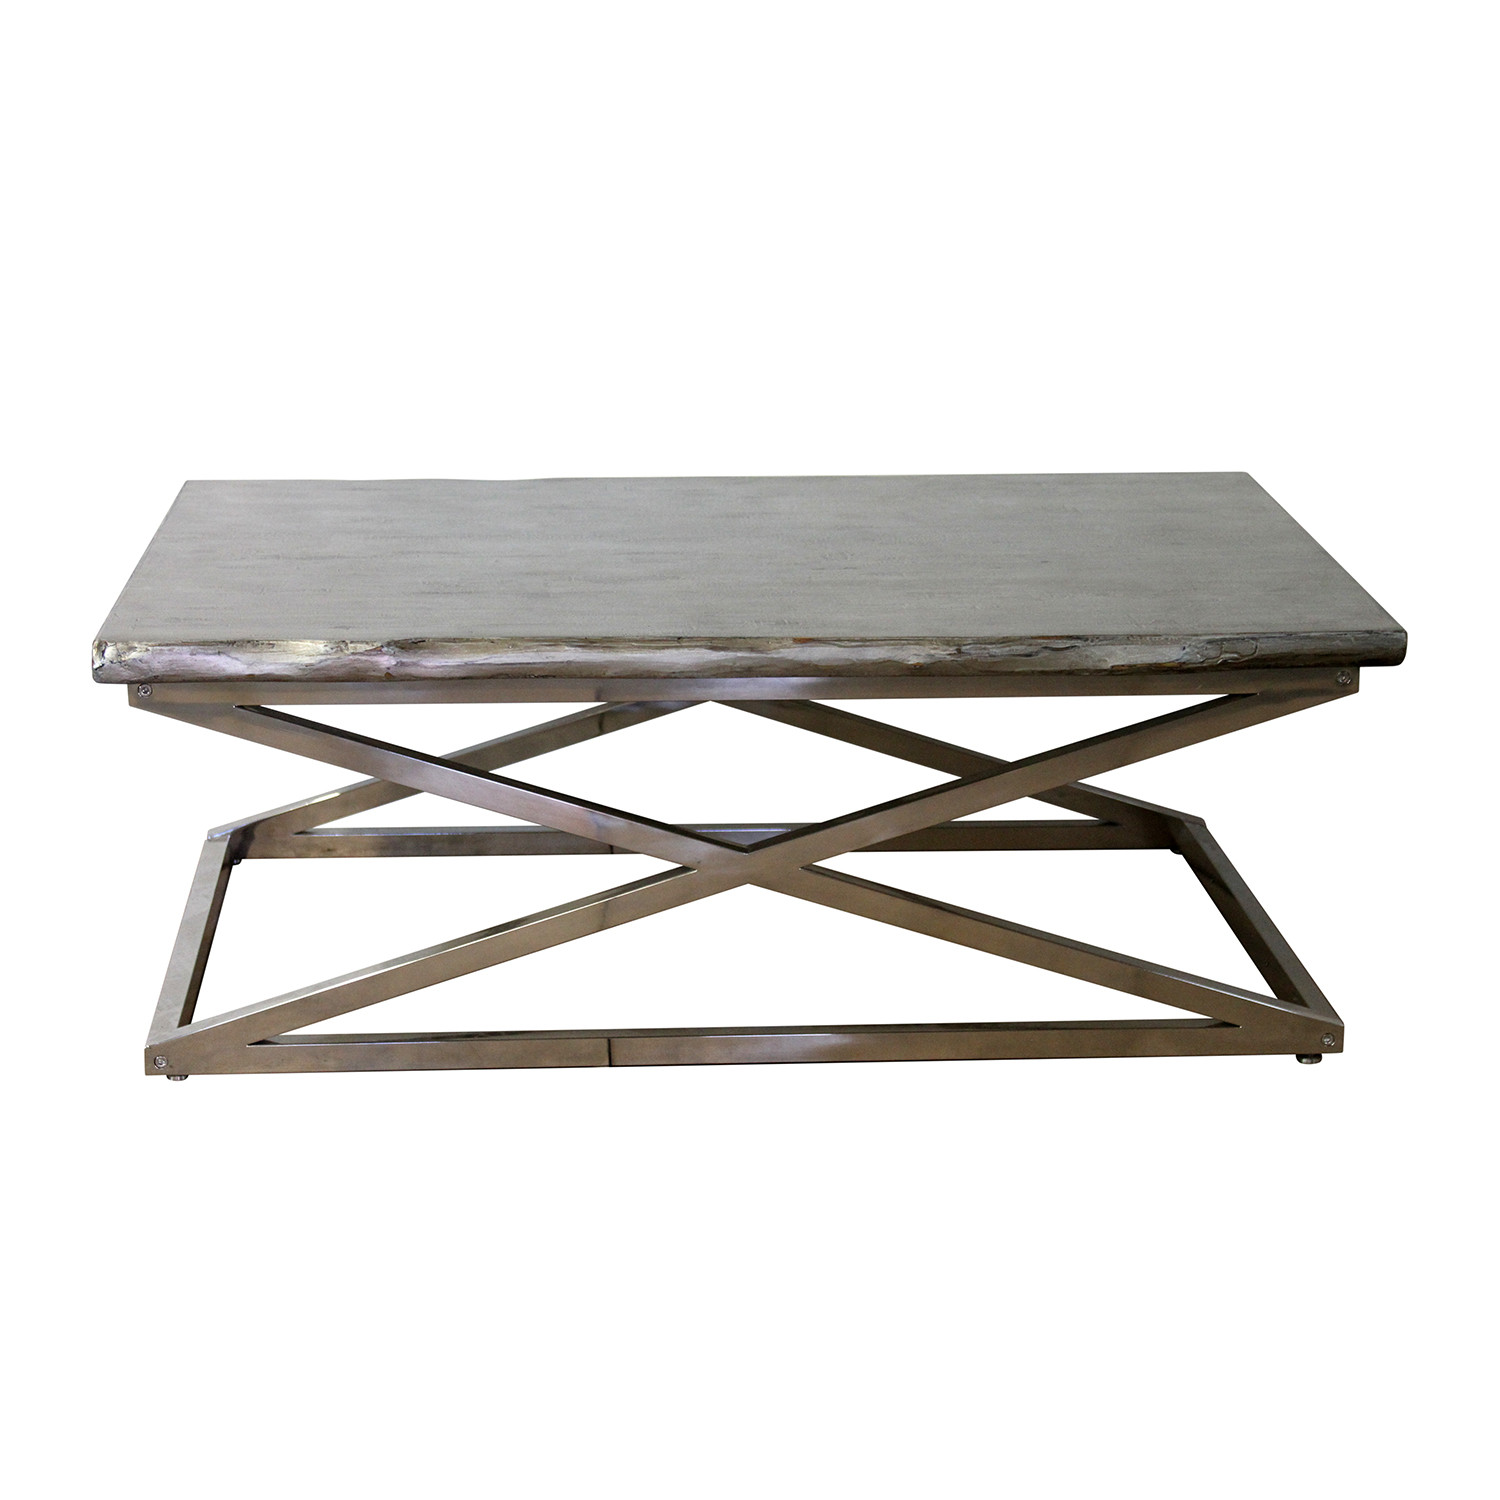 Voltin live edge coffee table with chrome legs madera home voltin live edge coffee table with chrome legs geotapseo Image collections